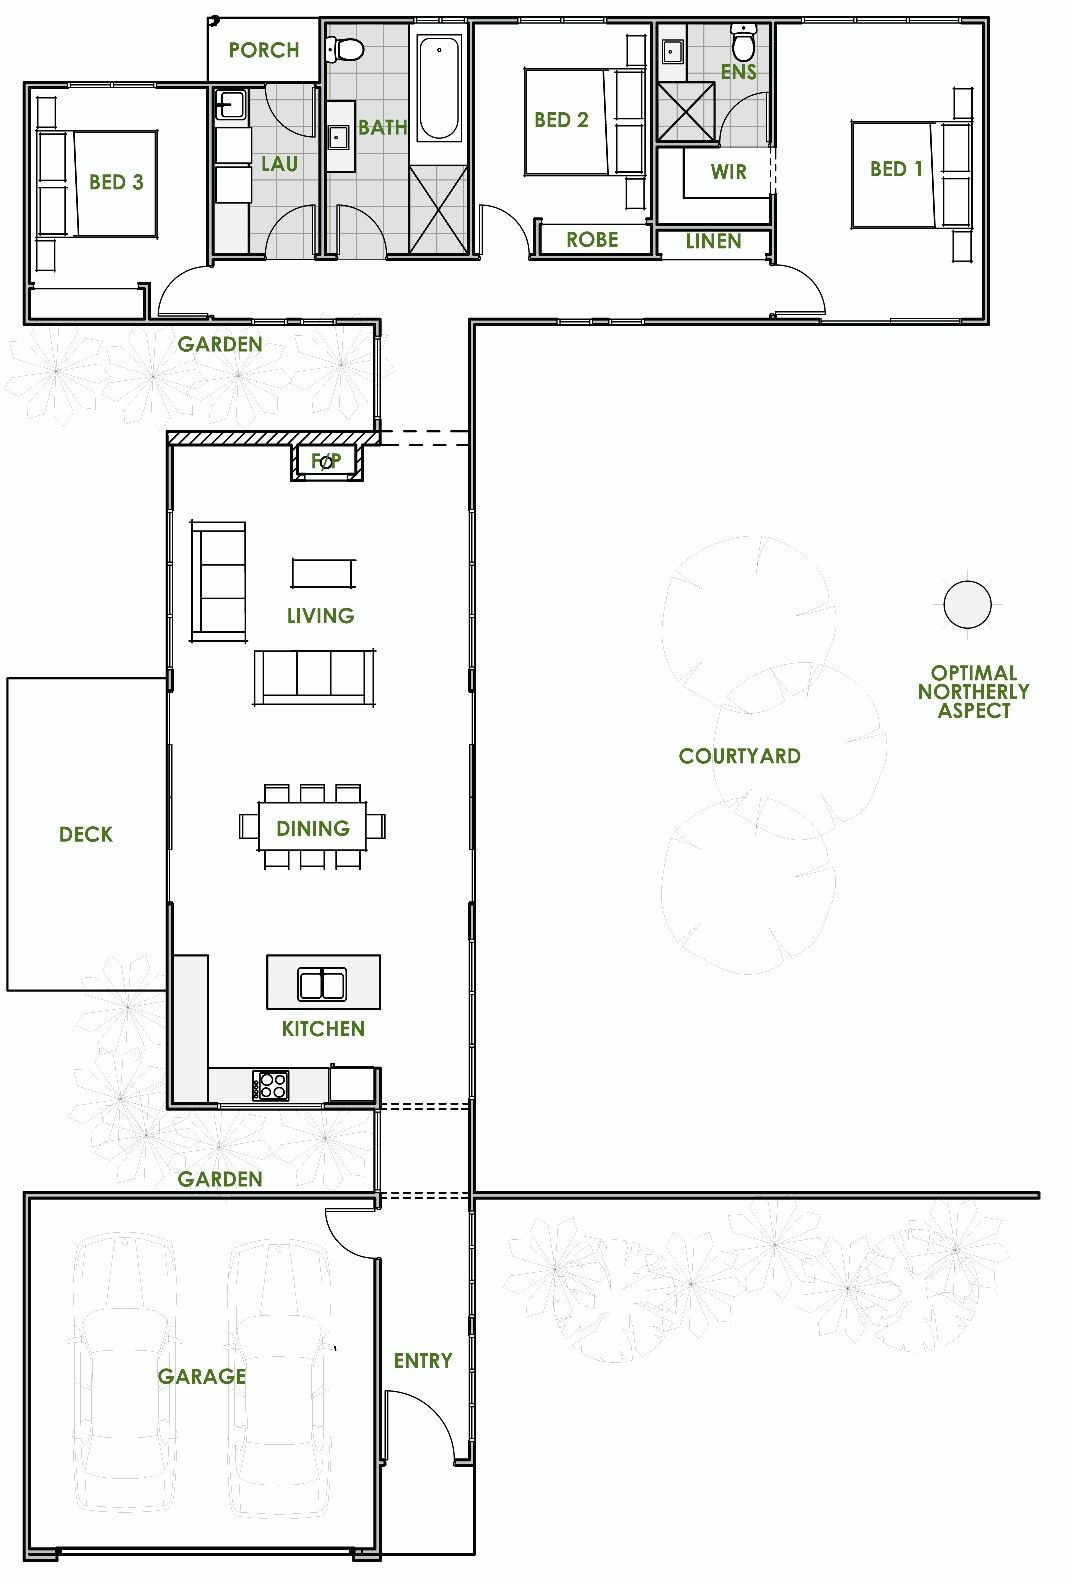 hight resolution of extra bedroom between b2 and bathroom